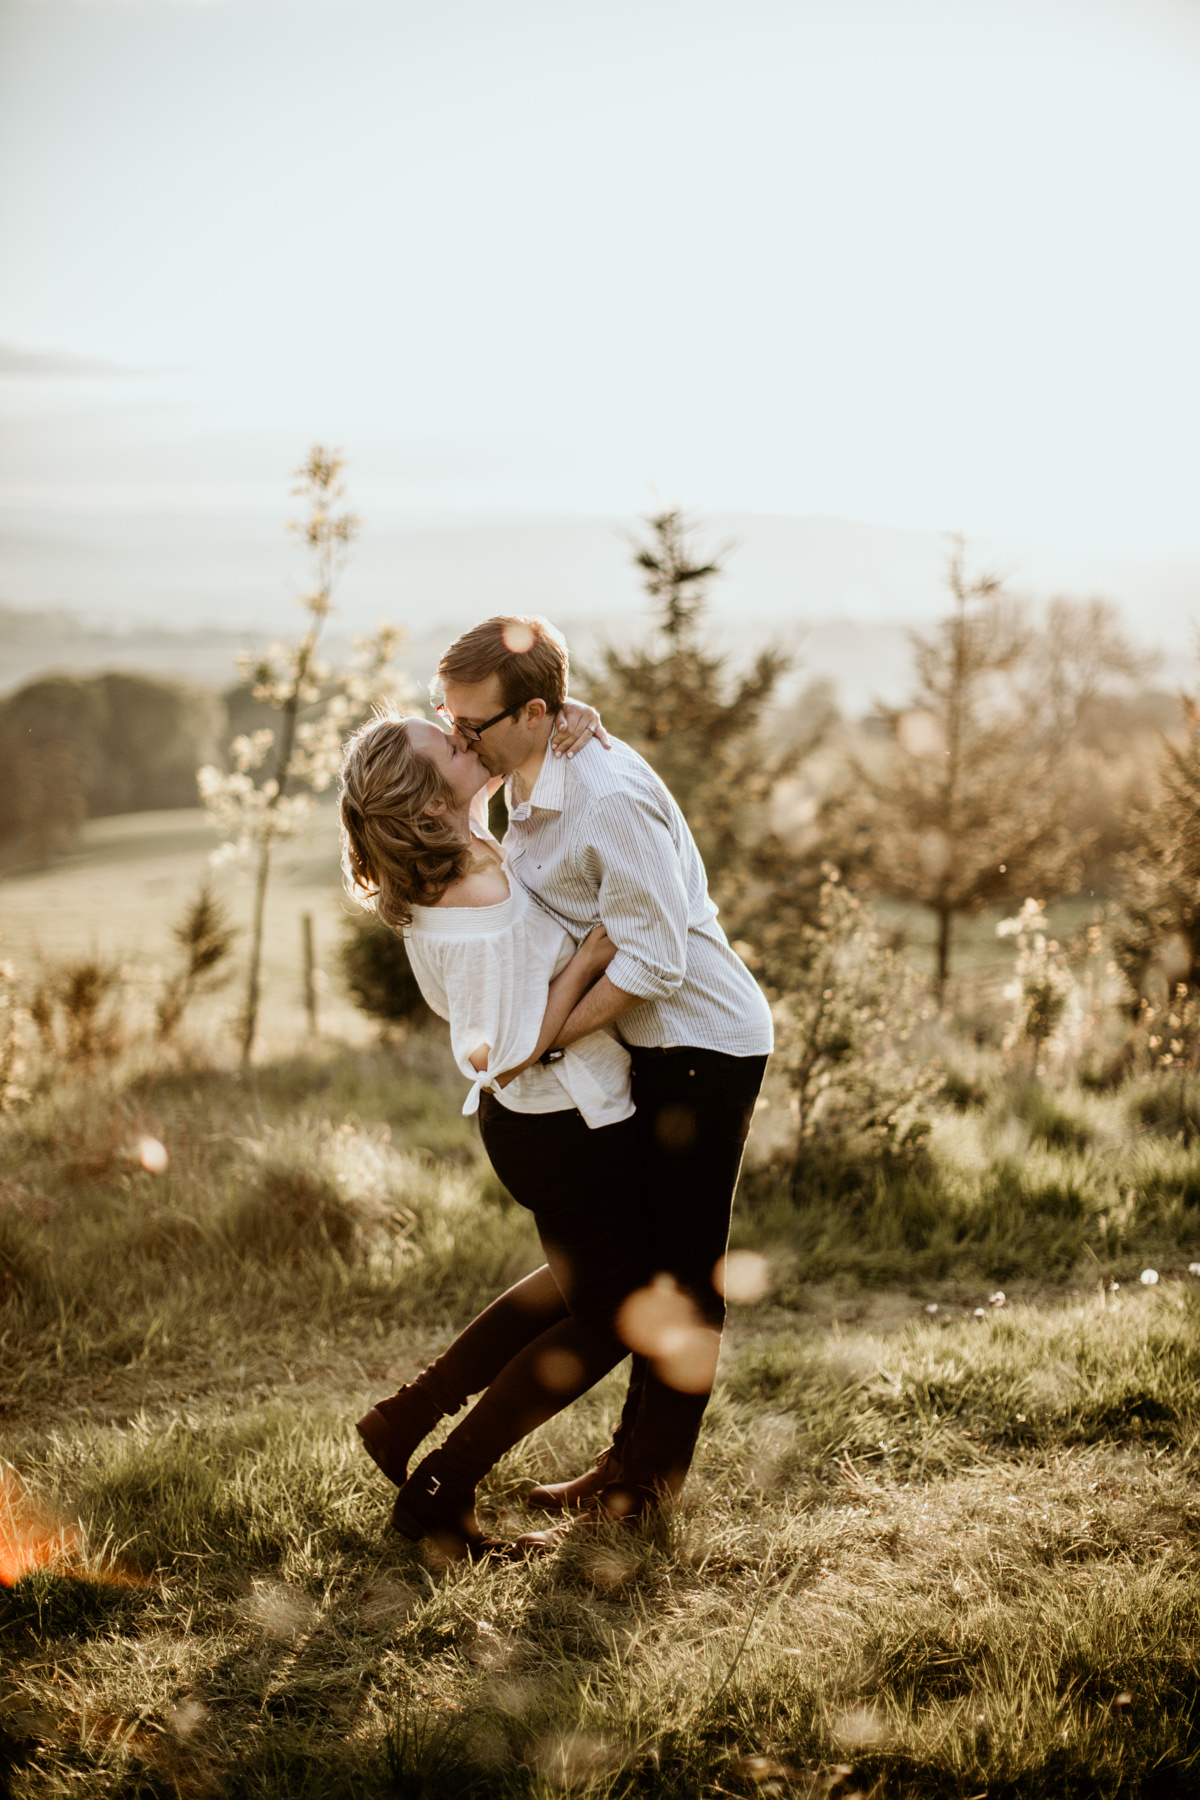 couple kissing on a field at sunset light during the cotswolds countryside engagement session